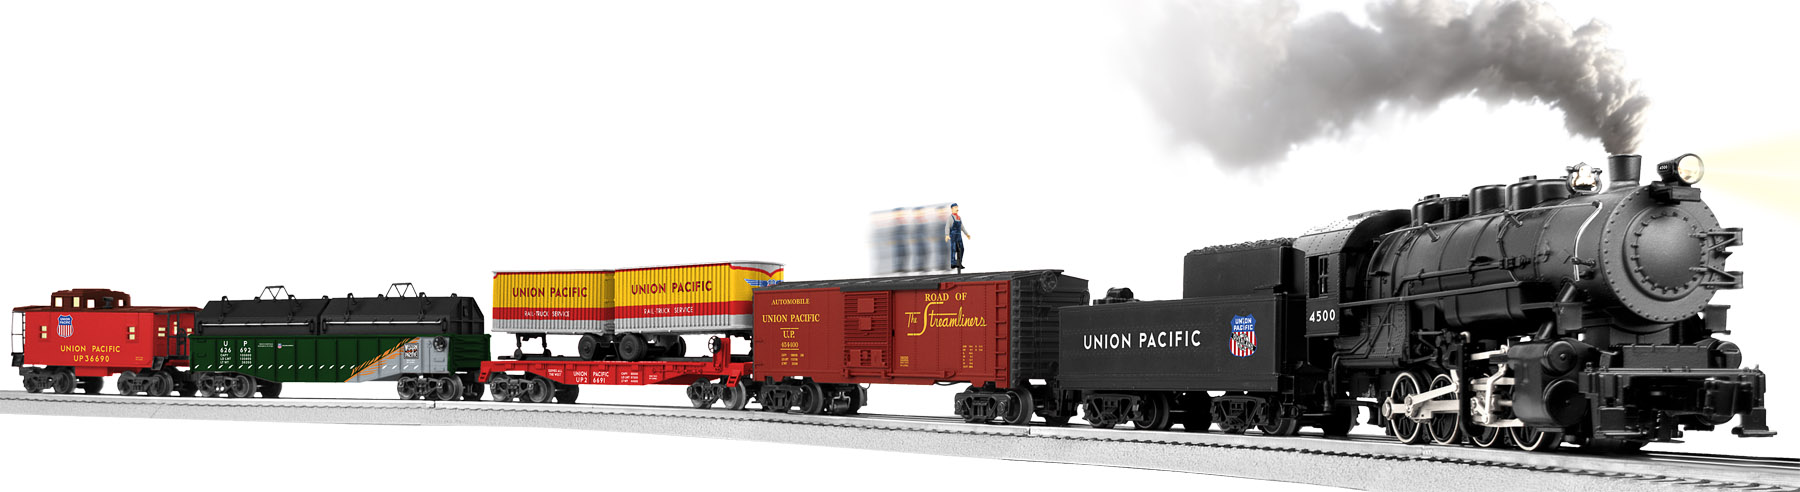 Union Pacific Overland Flyer Freight Train Conv 0 8 0